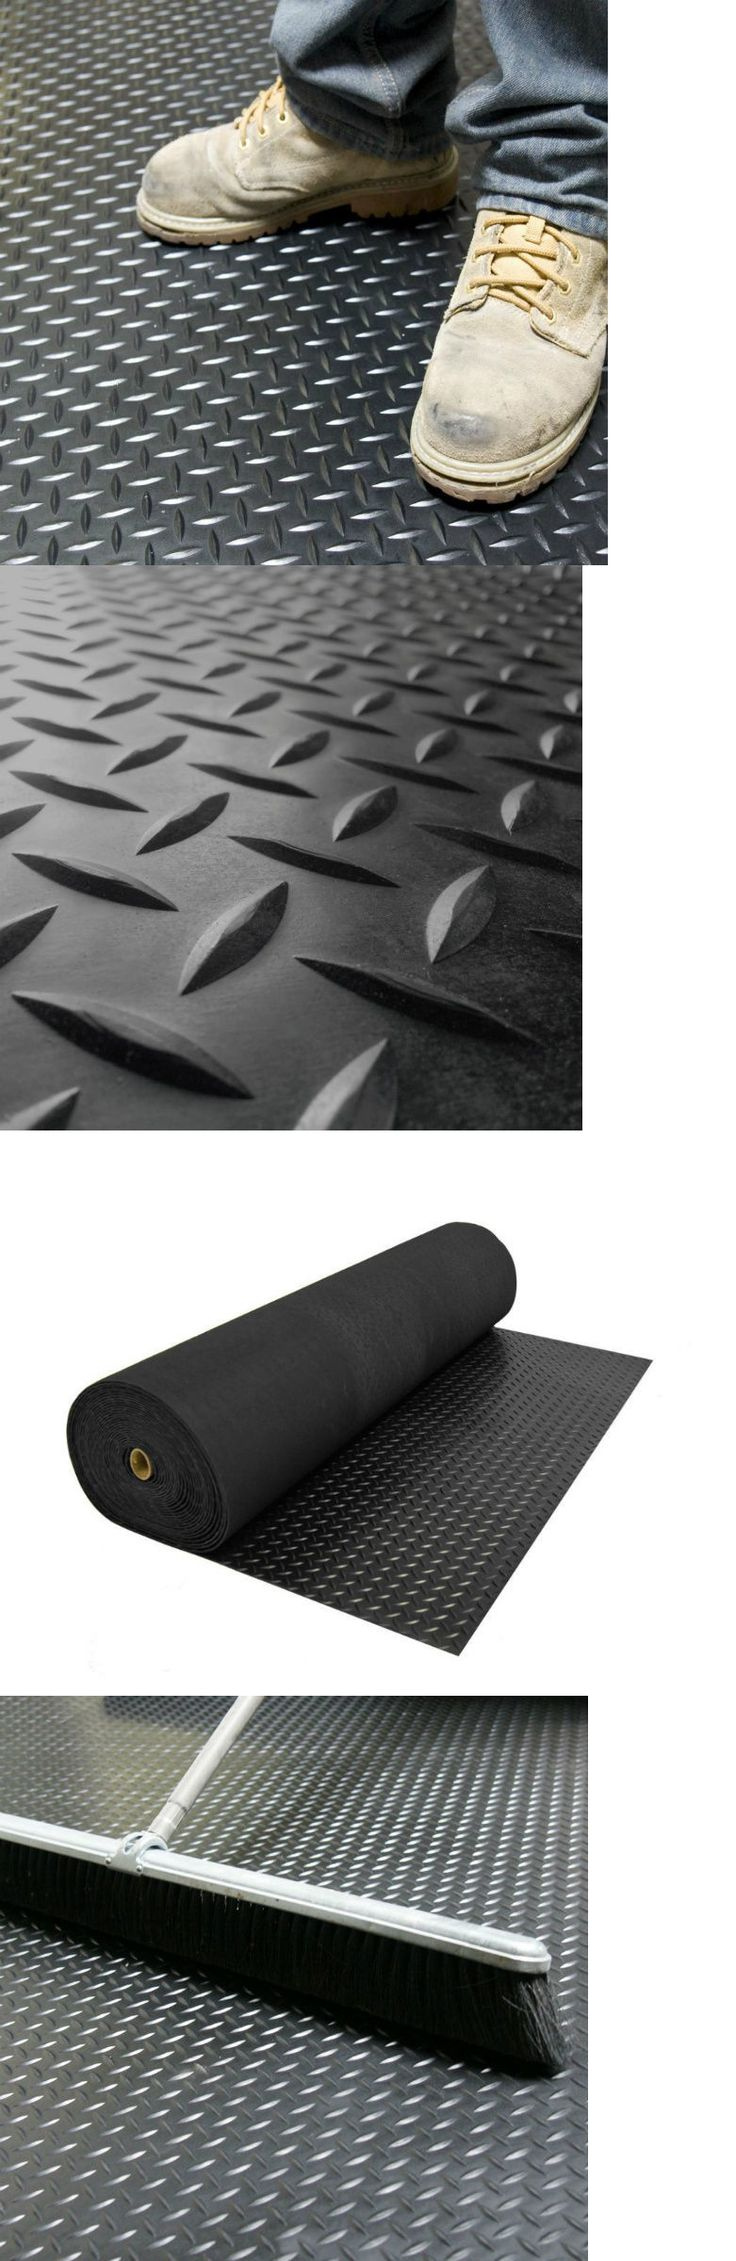 Equipment Mats and Flooring 179806: Garage Flooring Roll Out Gym Mats For Home Rubber Garage Mechanic Industrial BUY IT NOW ONLY: $69.0